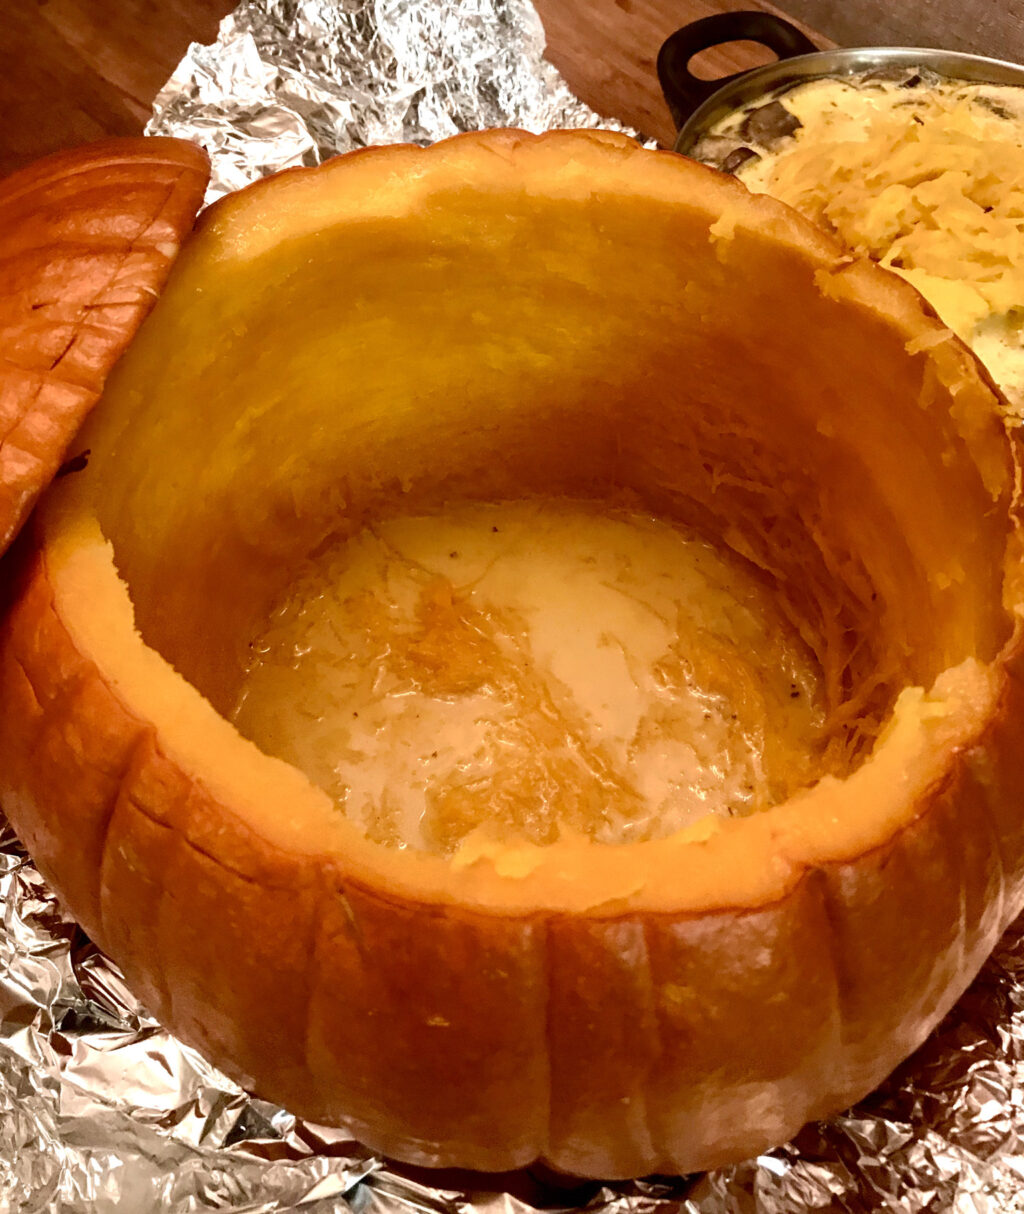 Empty the baked pumpkin